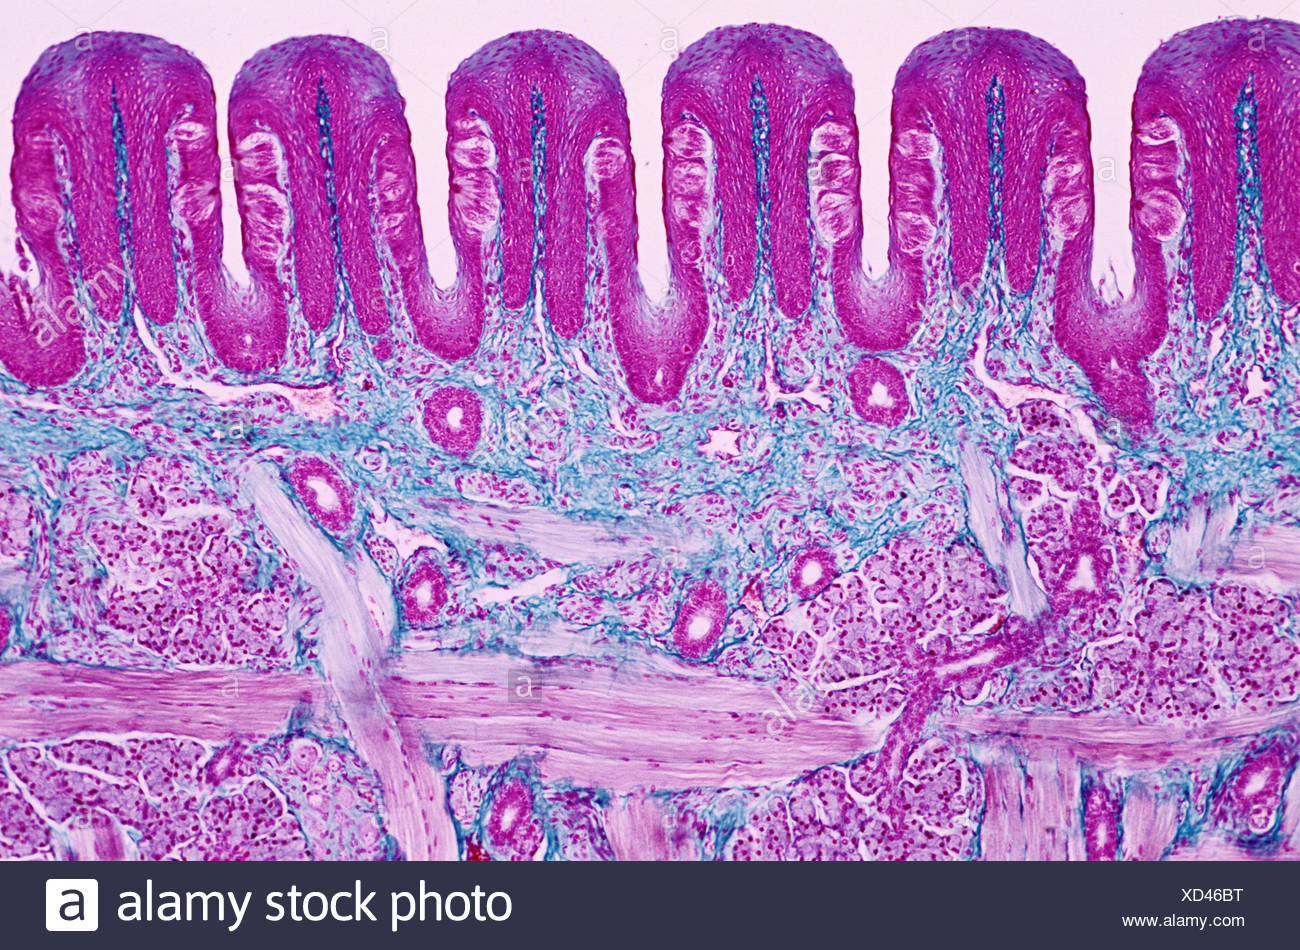 Coronal cross-section of tongue. Papilae visible. 400 X. Photomicrography. - Stock Image